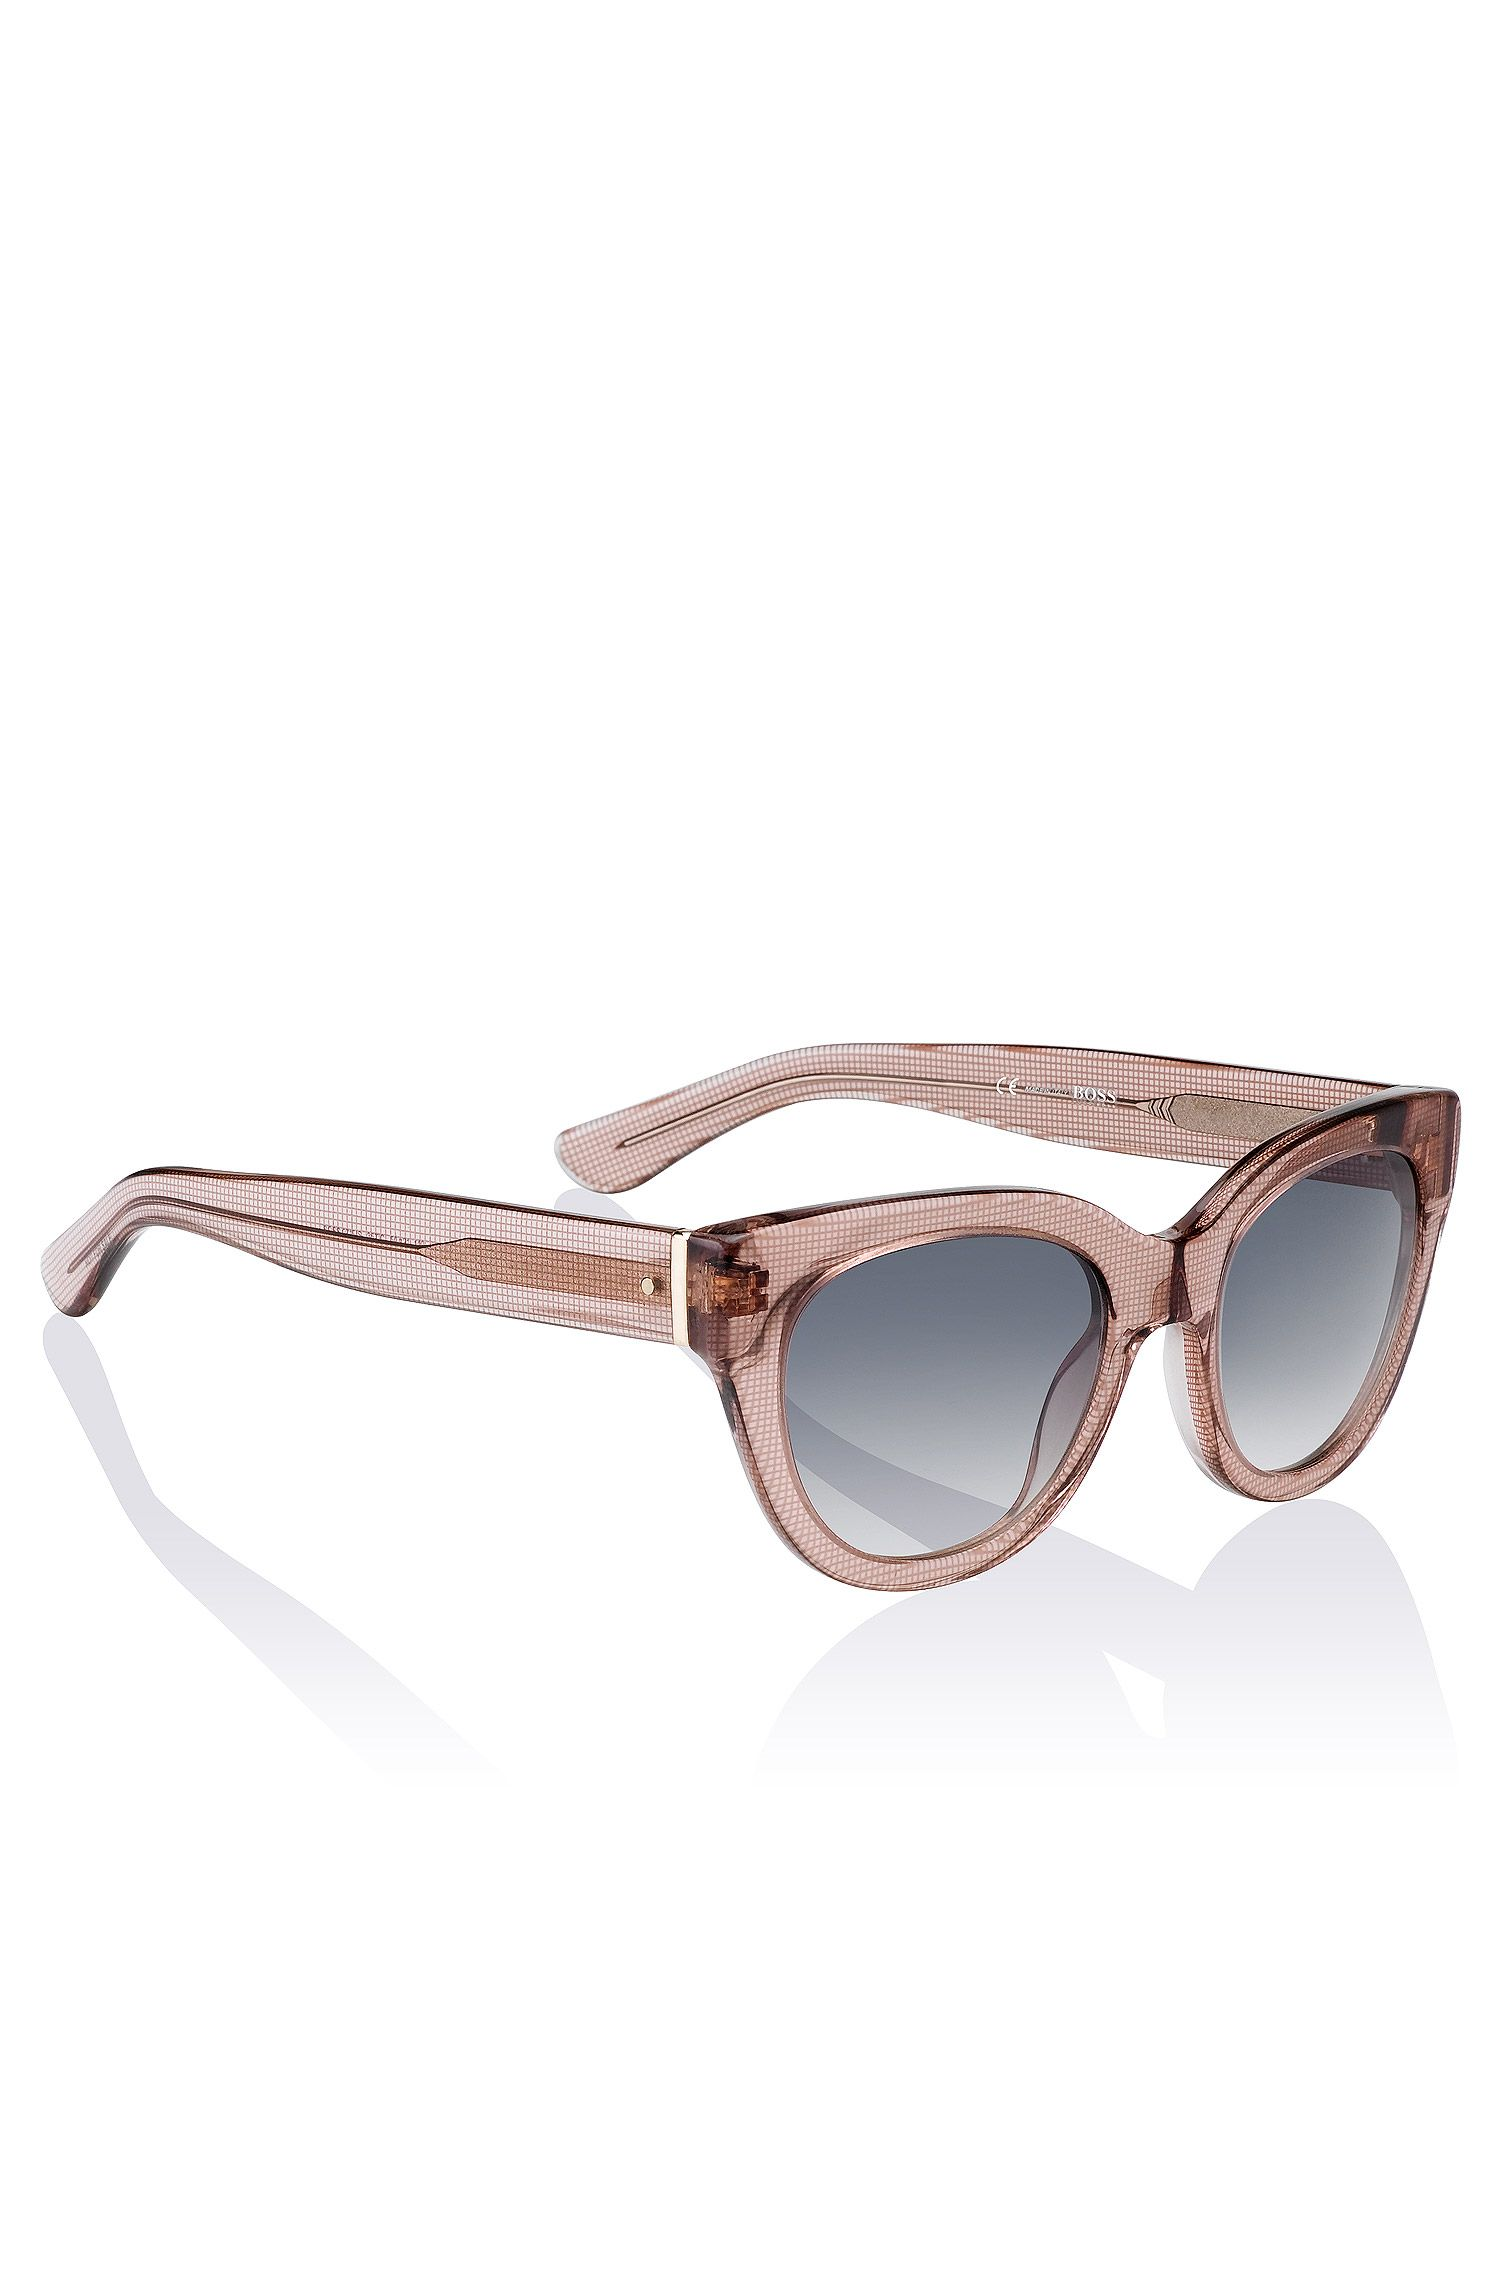 Cat-eye sunglasses 'BOSS 0715/S'